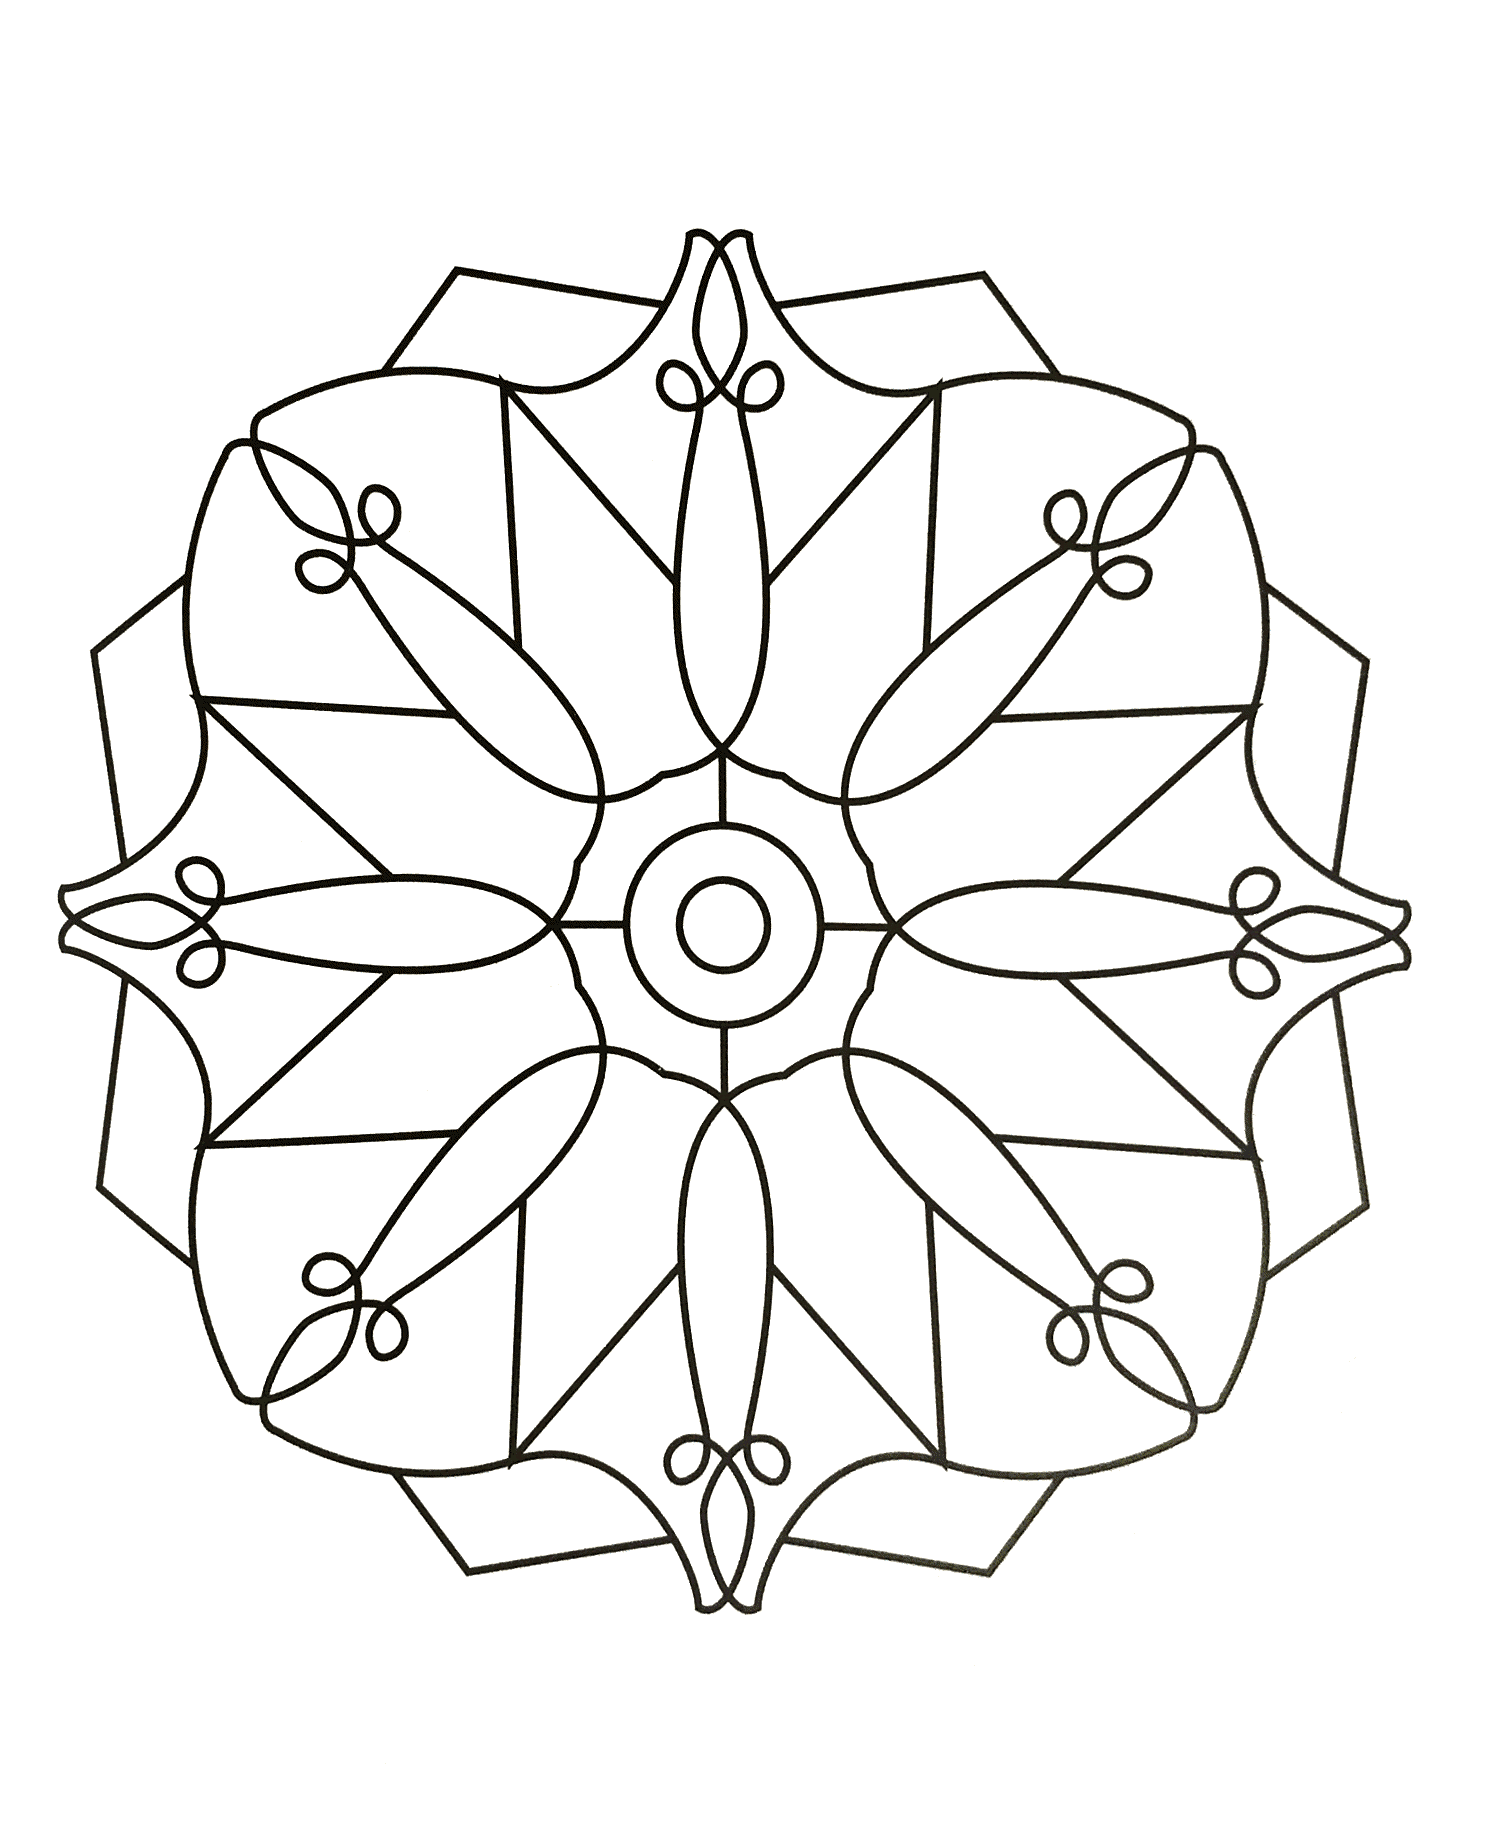 simple mandala 85 from the gallery kids mandalas - Simple Mandala Coloring Pages Kid